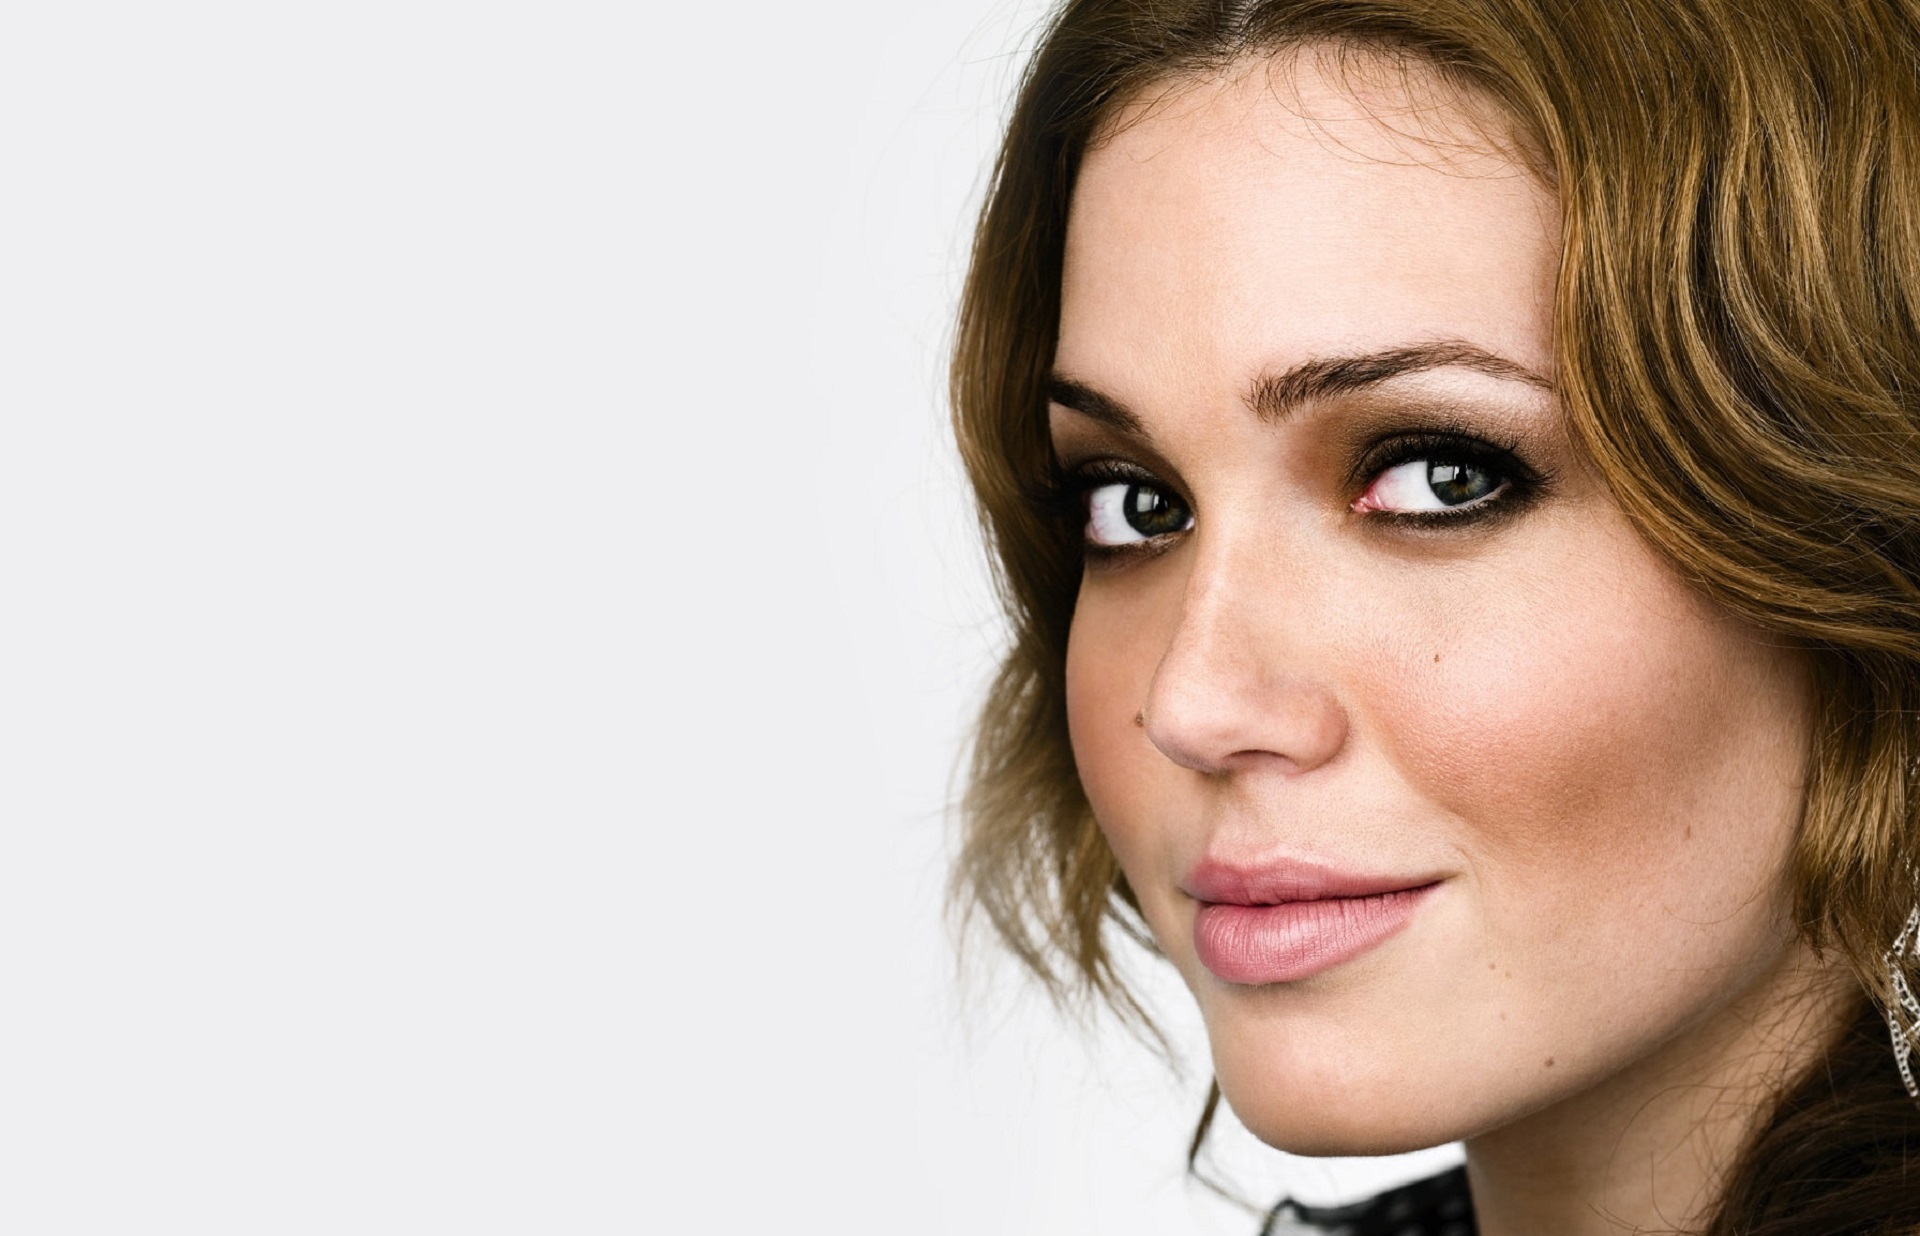 mandy moore Check out mandy moore by mandy moore on amazon music stream ad-free or purchase cd's and mp3s now on amazoncom.